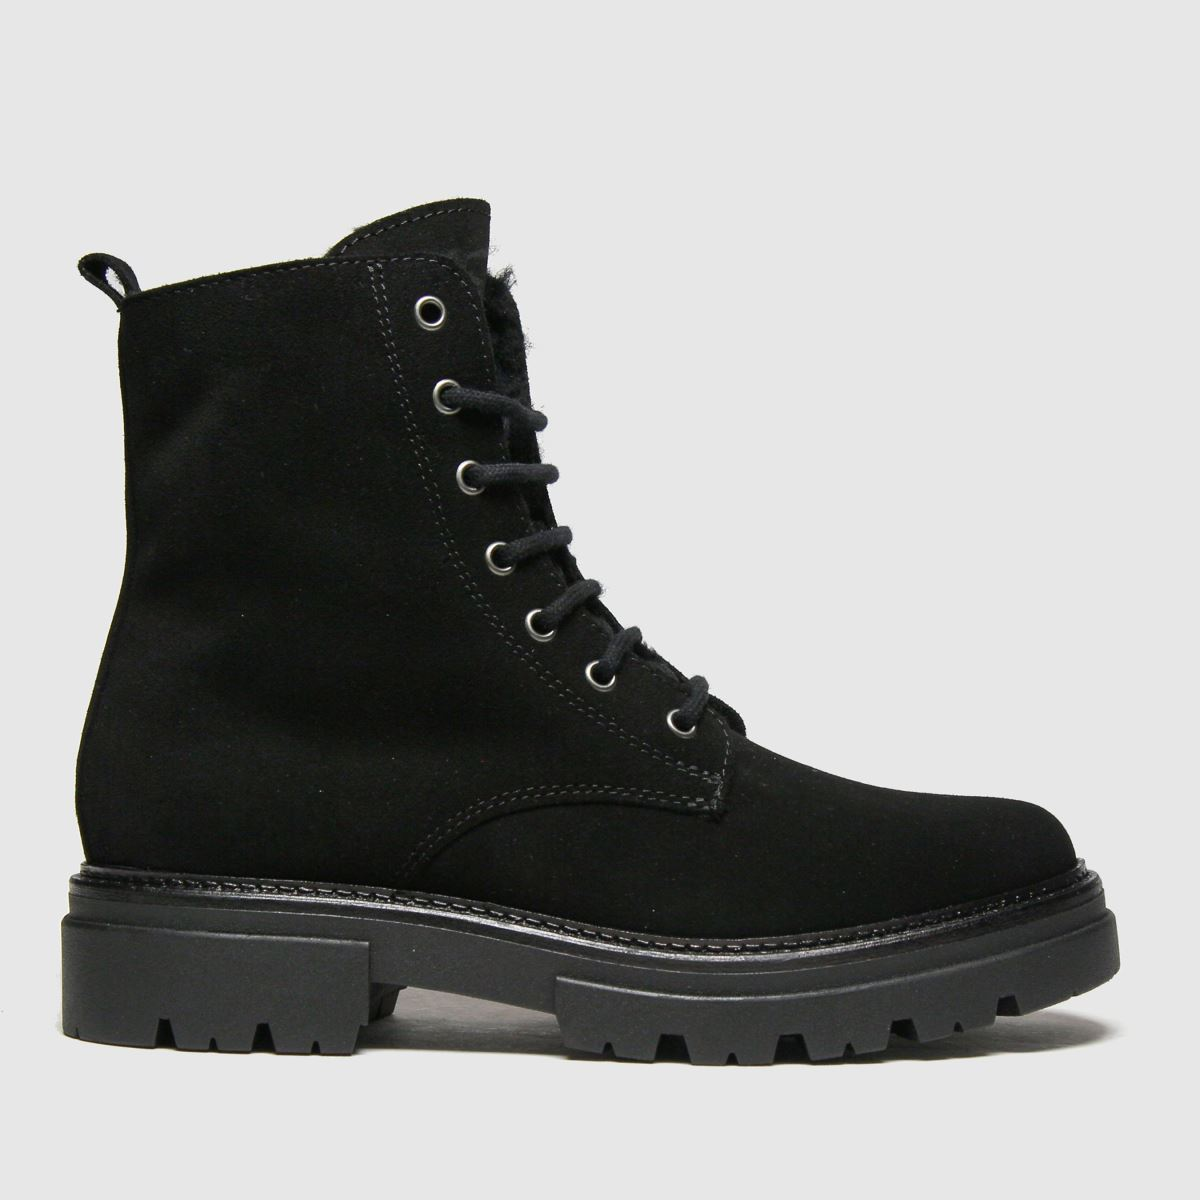 Schuh Black Ariana Suede Lace Up Boots